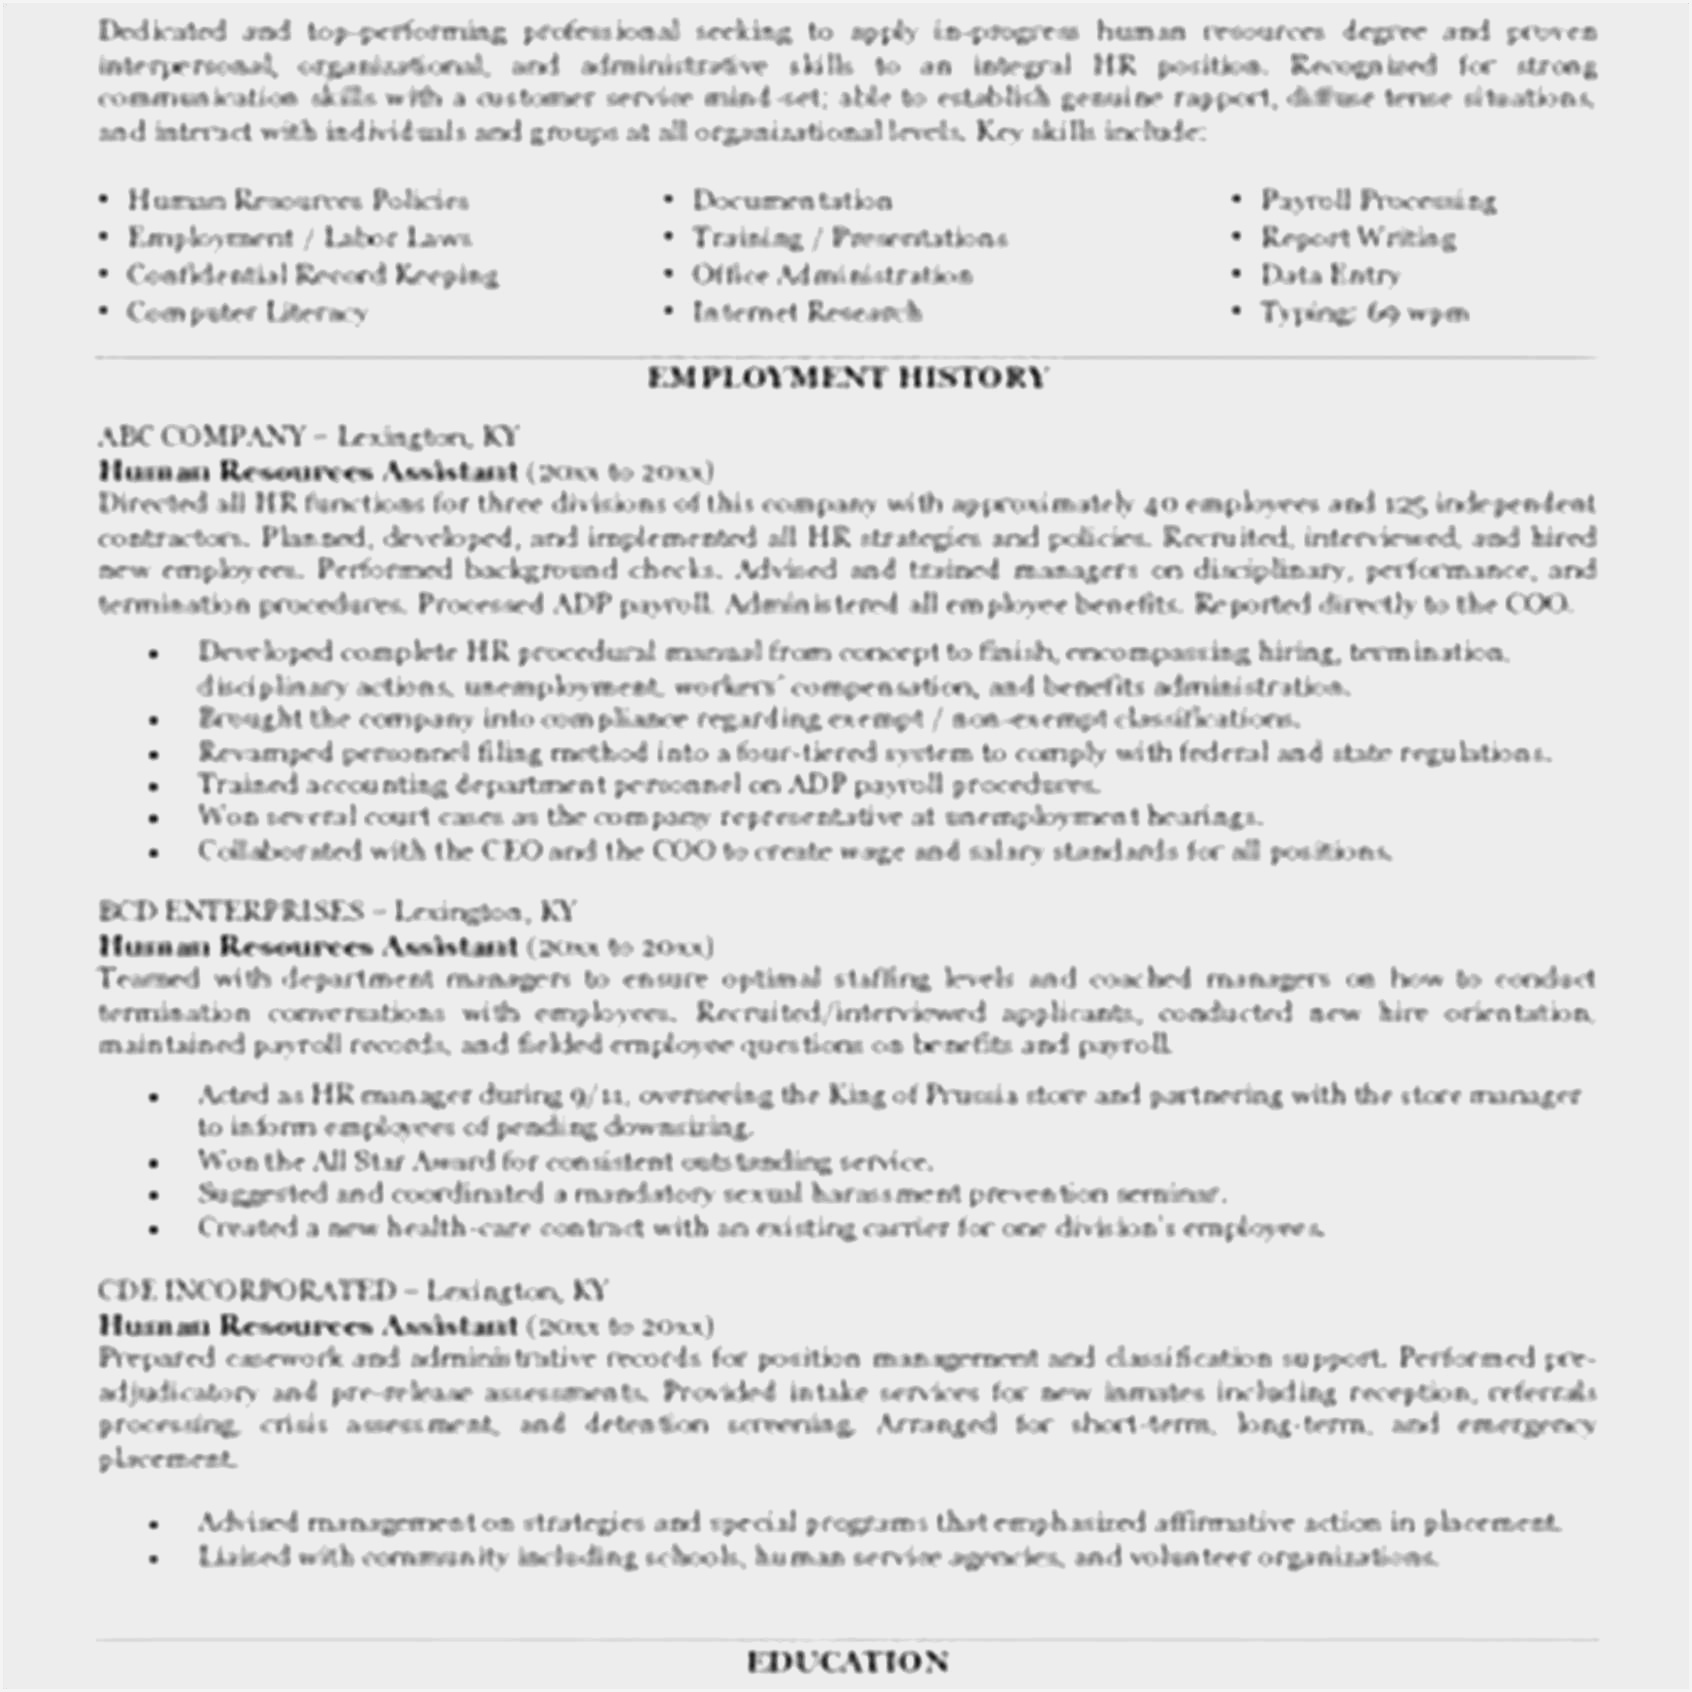 healthcare administrative assistant resume examples sample medical skills good management Resume Medical Administrative Assistant Resume Skills